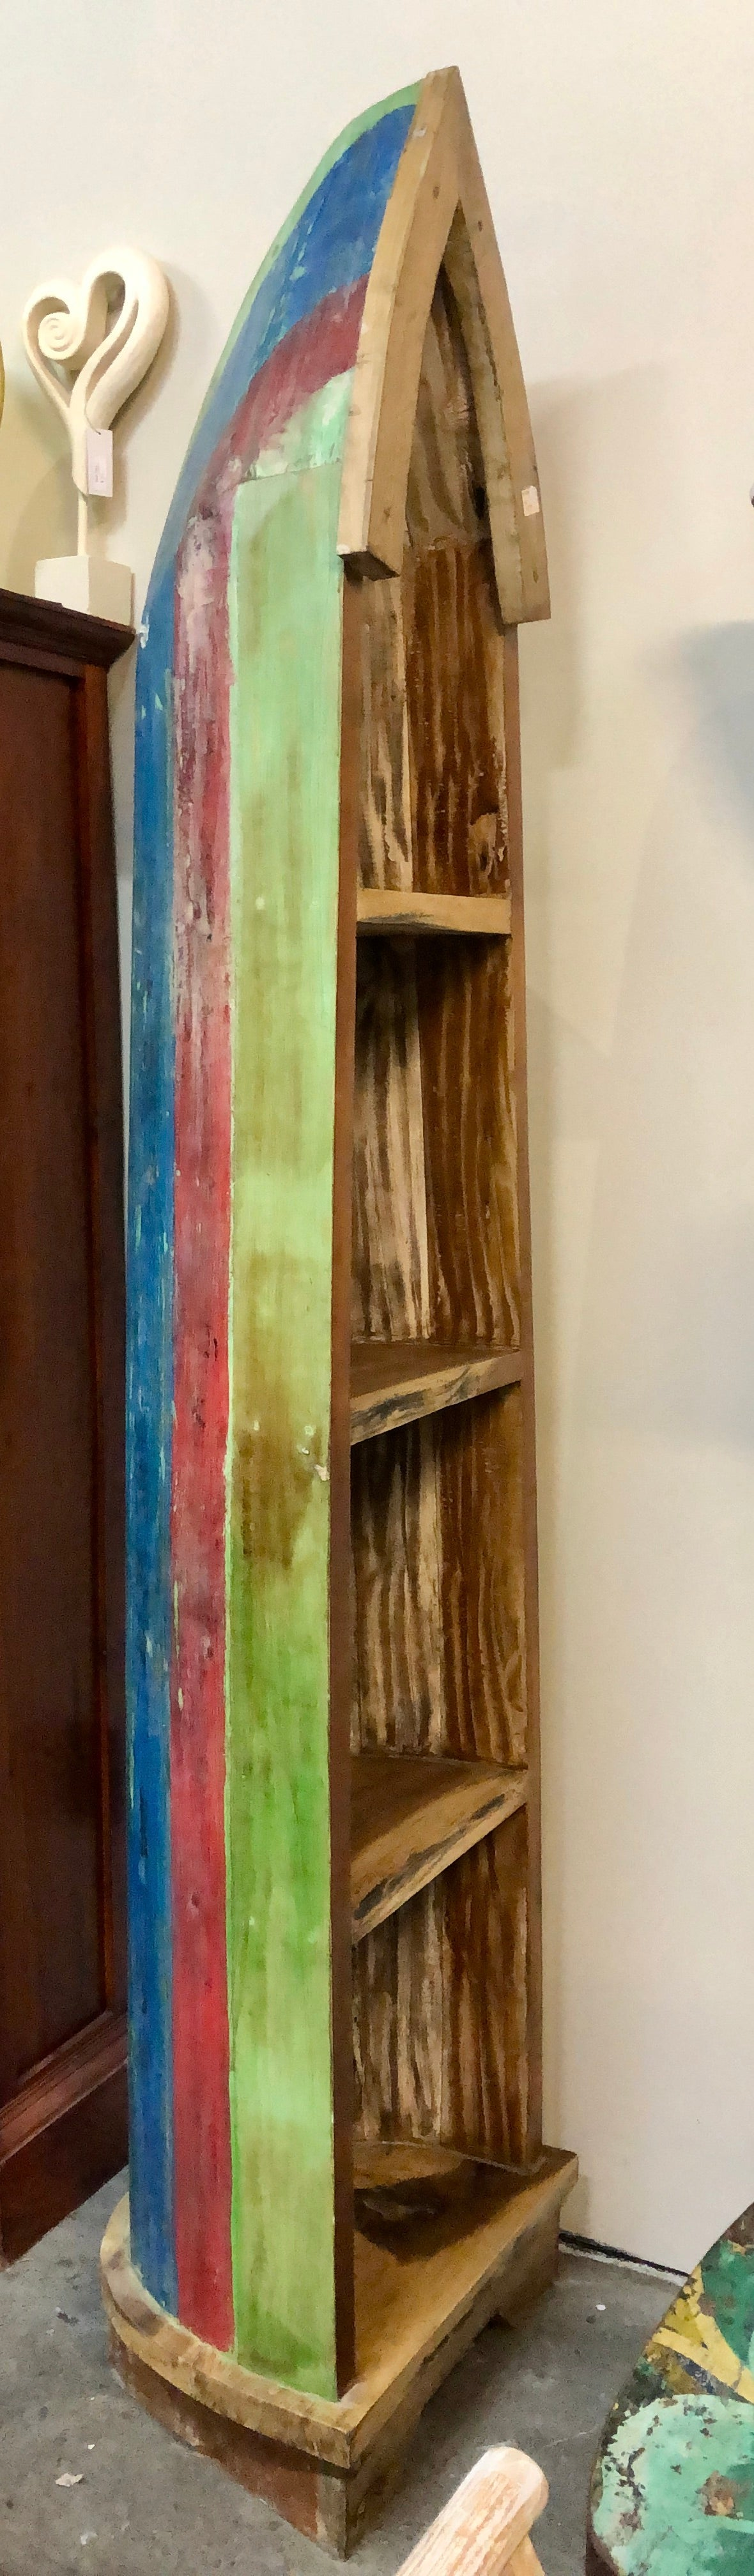 Reclaimed Boat - Shelf